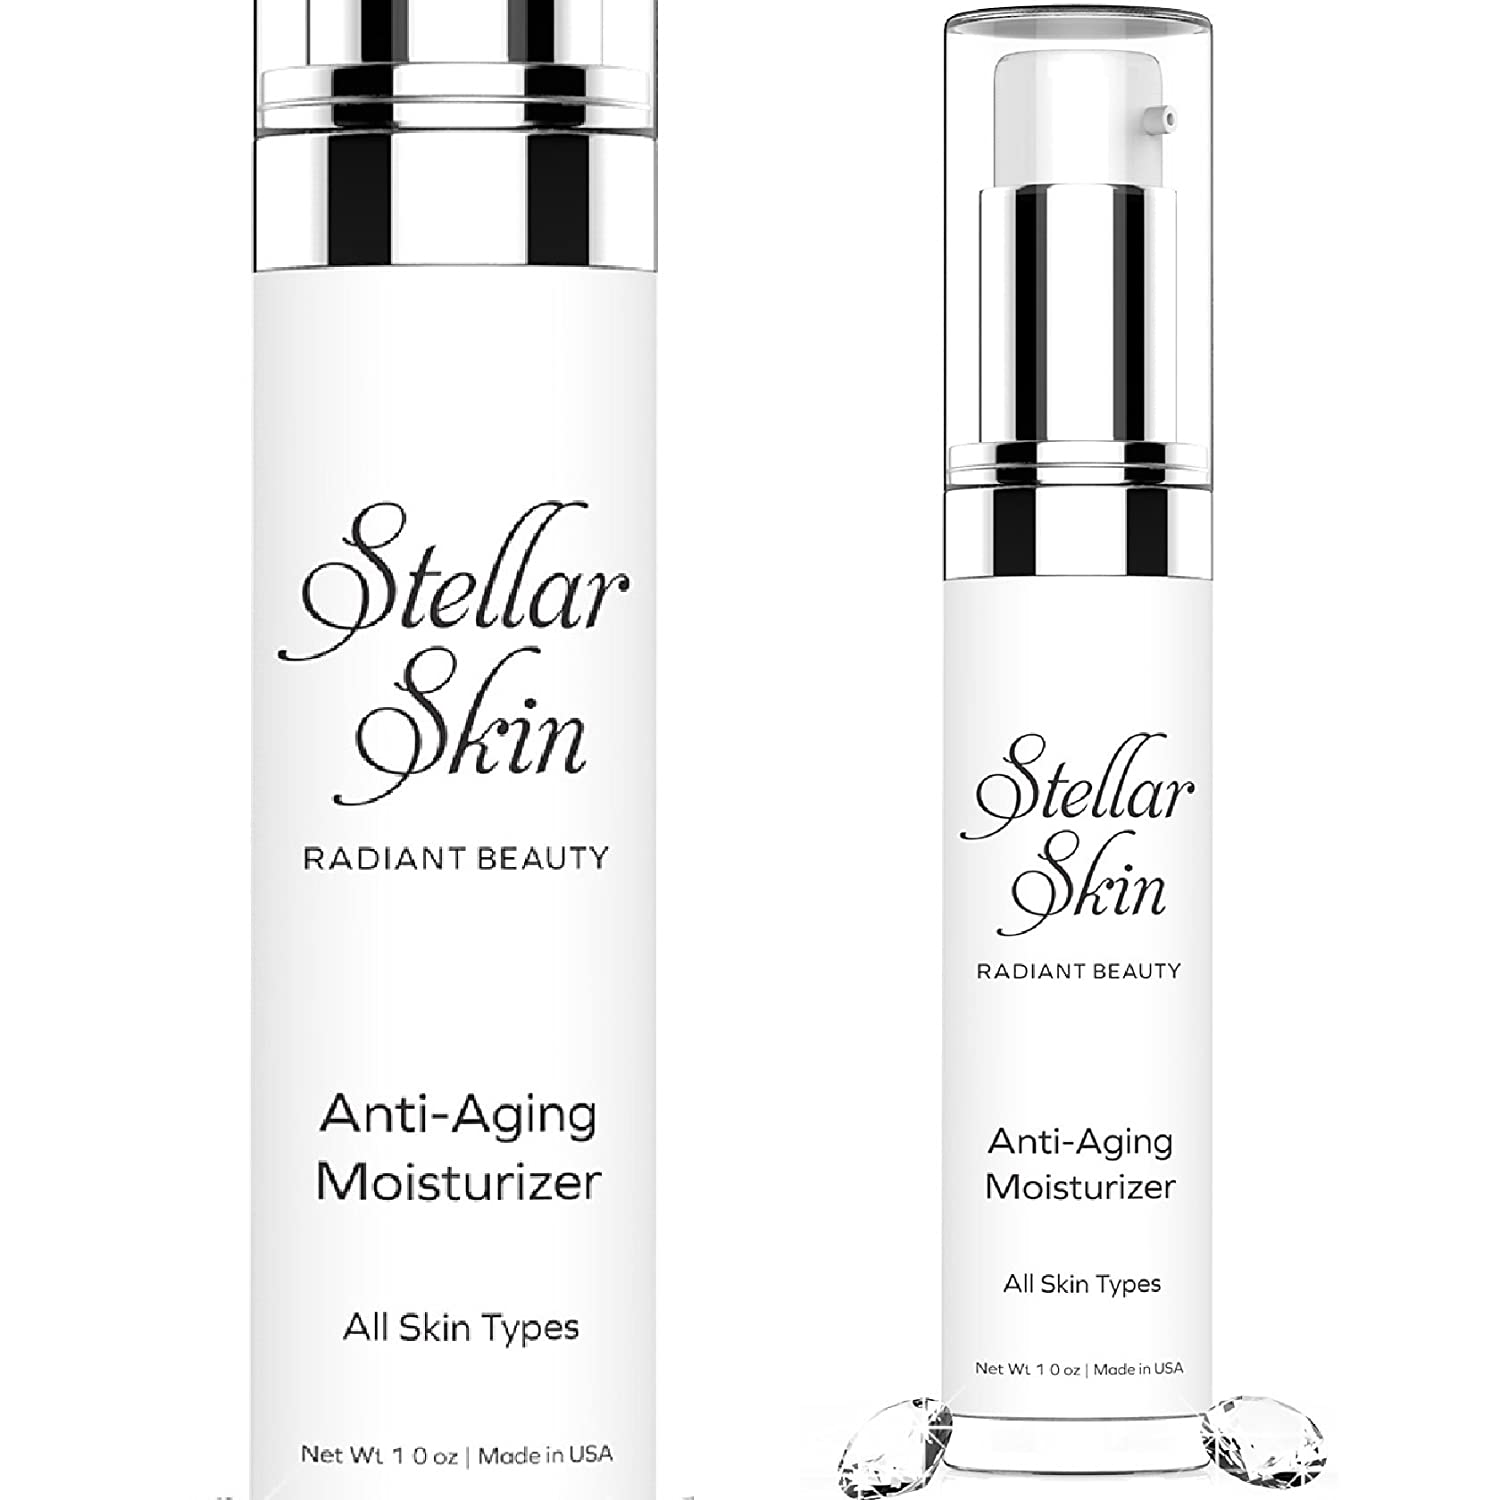 Stellar Skin Face Moisturizer - Anti Aging Cream 1 oz - Best to Boost Collagen and Reduce Fine Lines & Wrinkles, Contains Duo-Peptides, Skin Care That Works to Restore Youthful Glow …